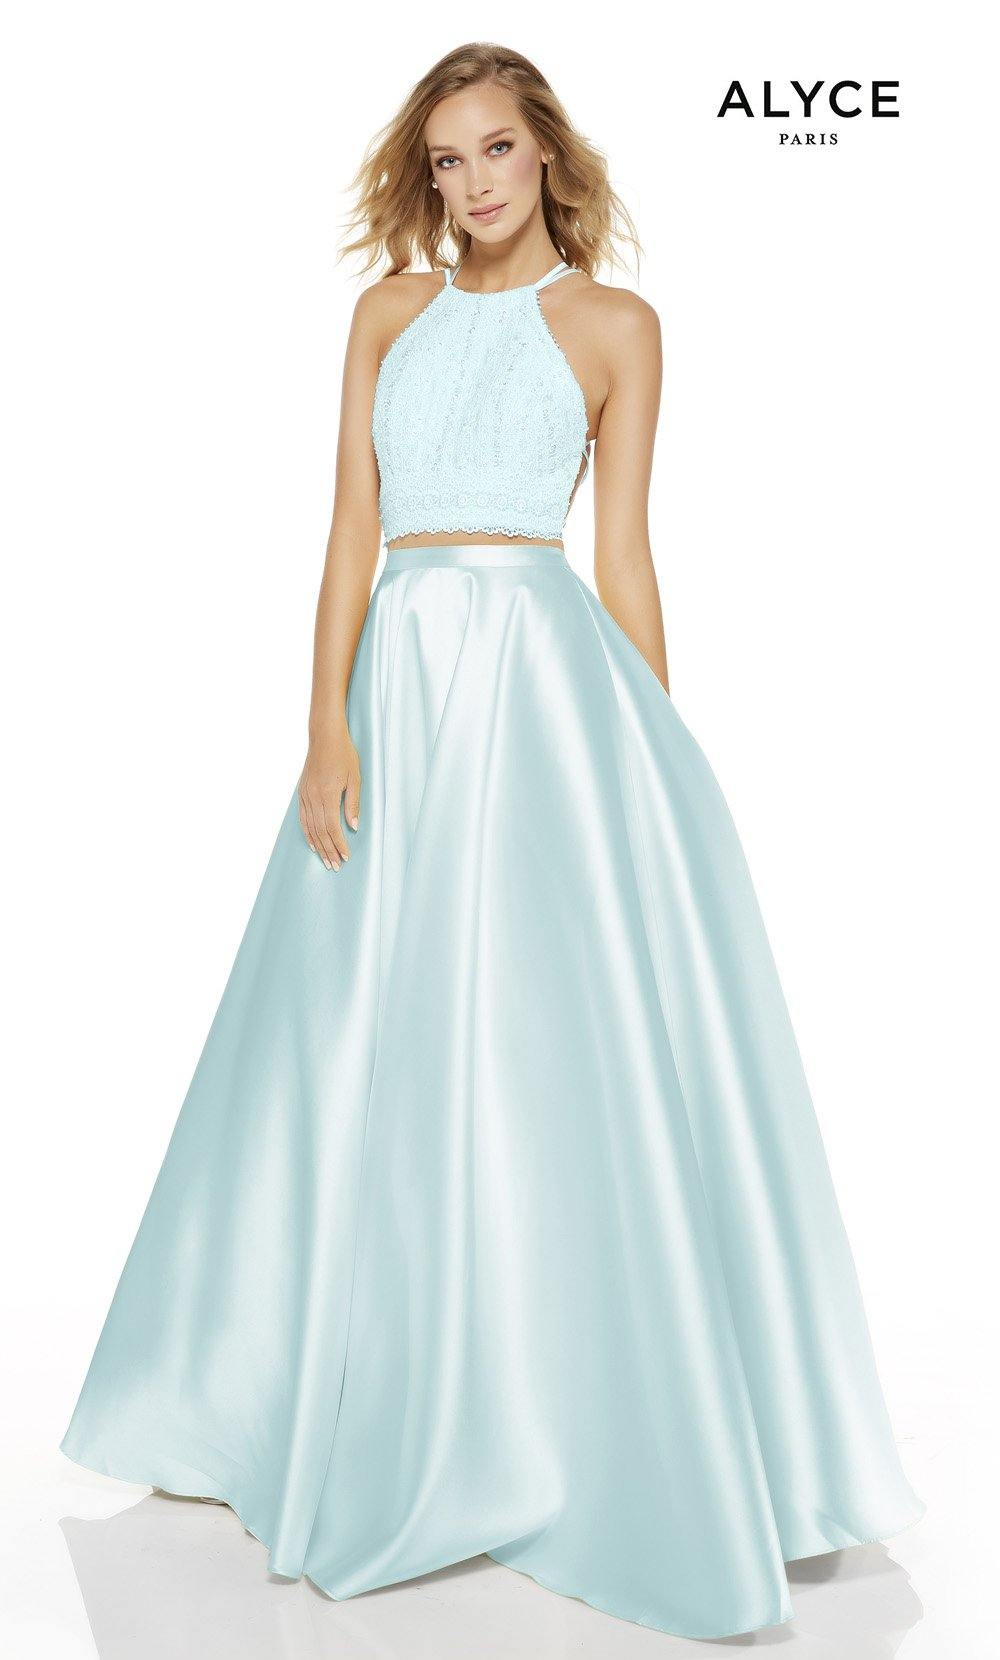 Light Blue two piece prom dress with a halter neckline